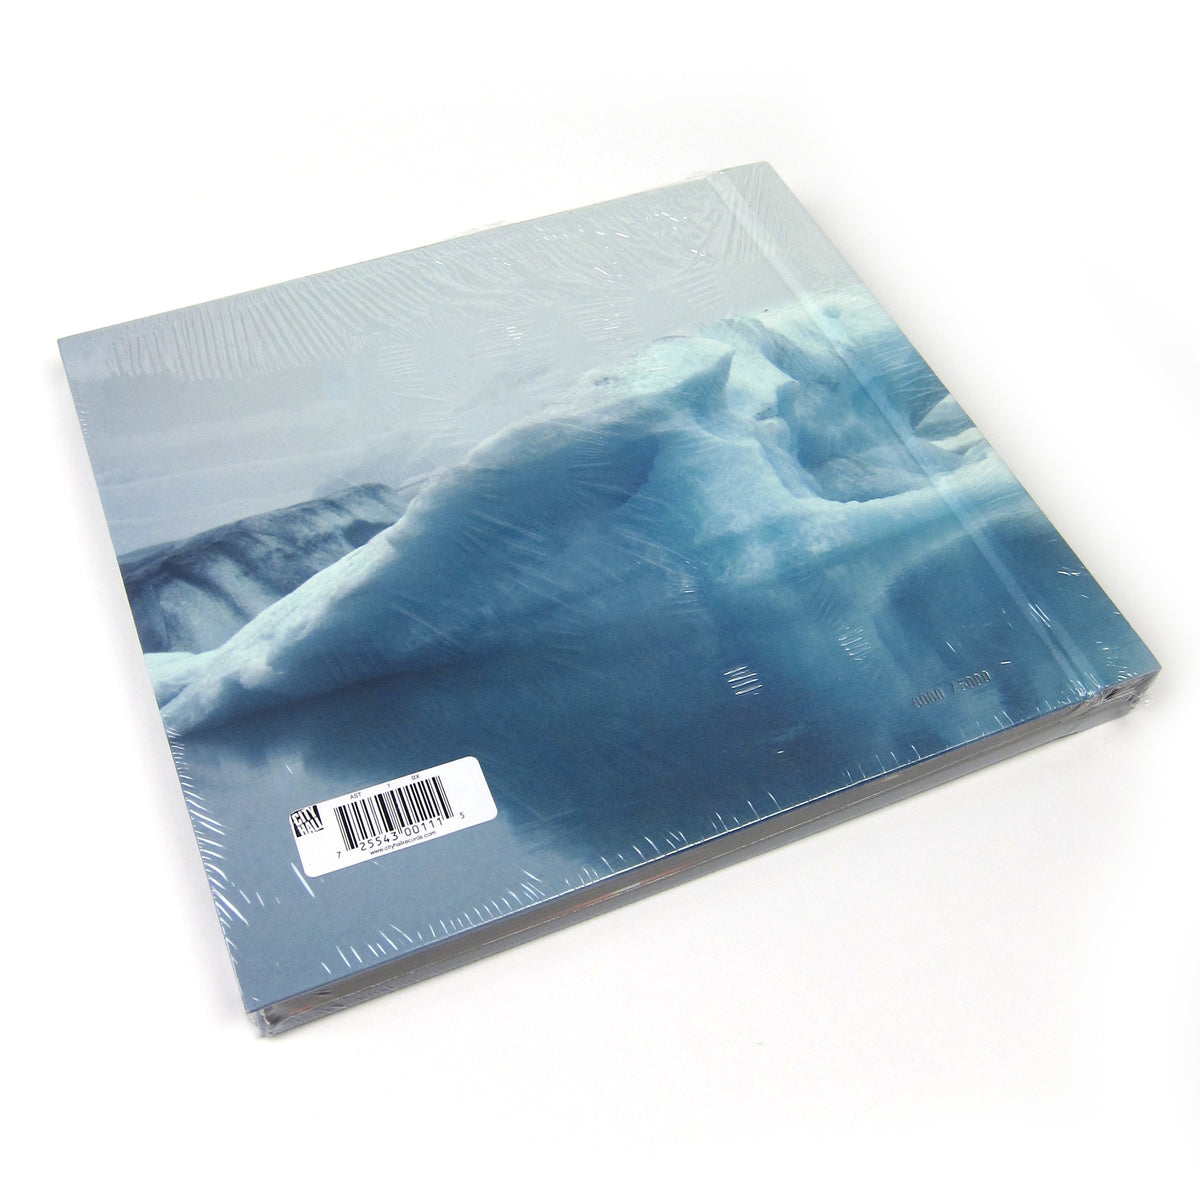 Sigur Ros: In A Frozen Sea - A Year With Sigur Ros Vinyl 7LP Boxset